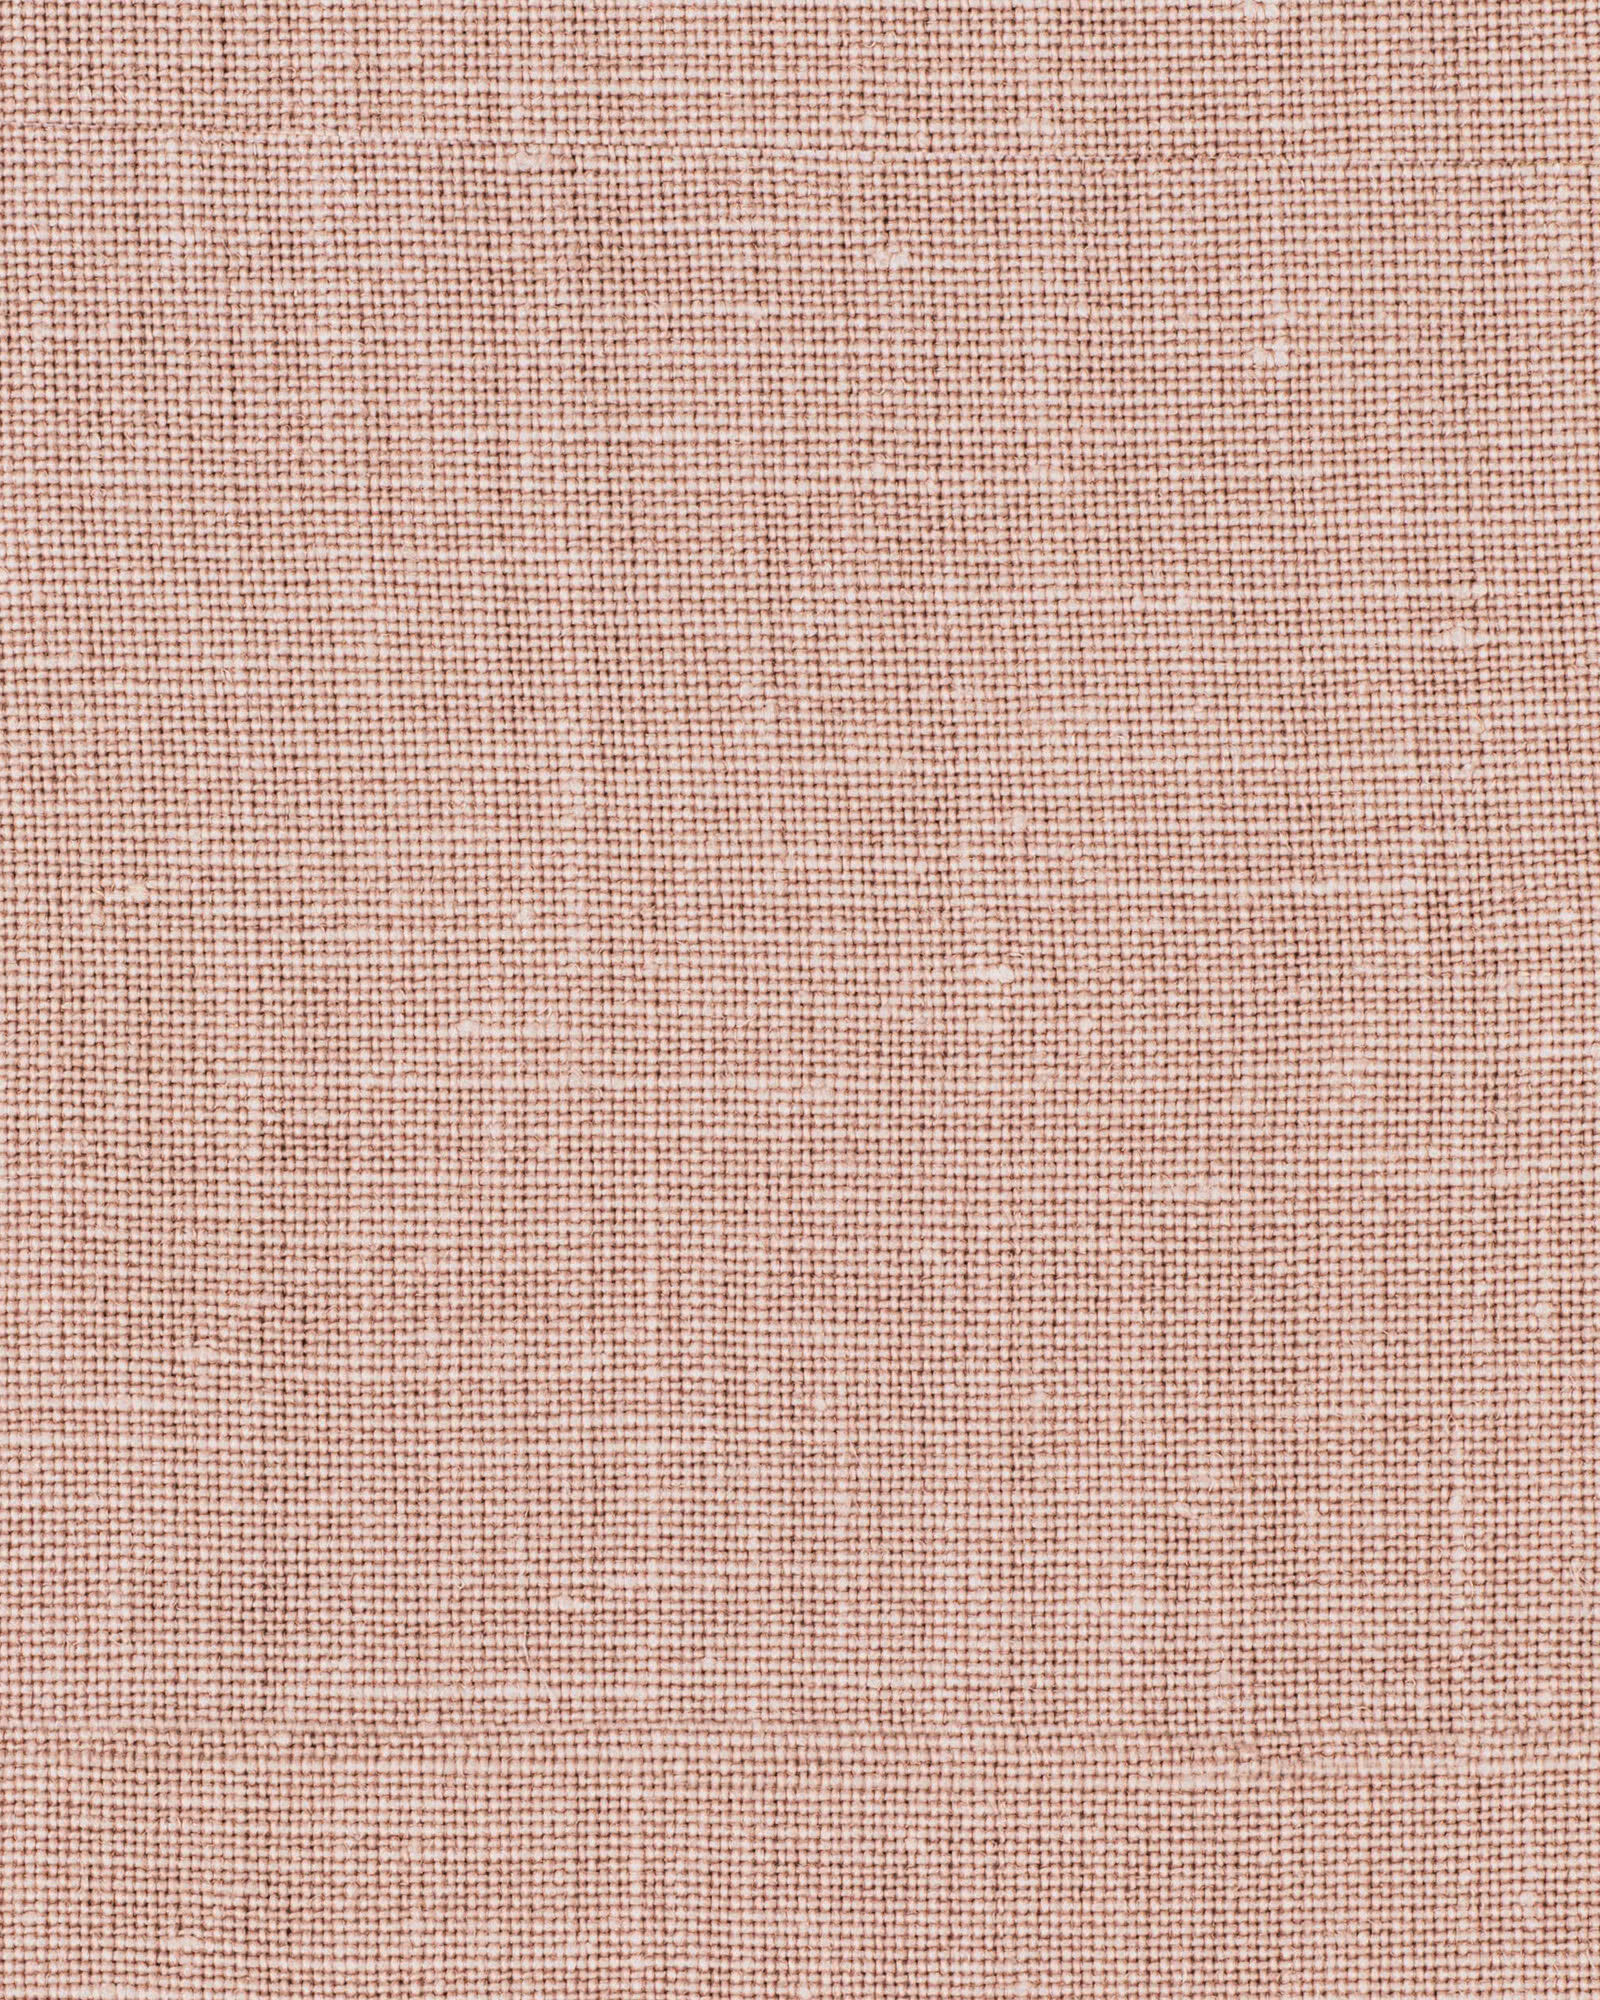 Fabric by the Yard – Washed Linen, Blush